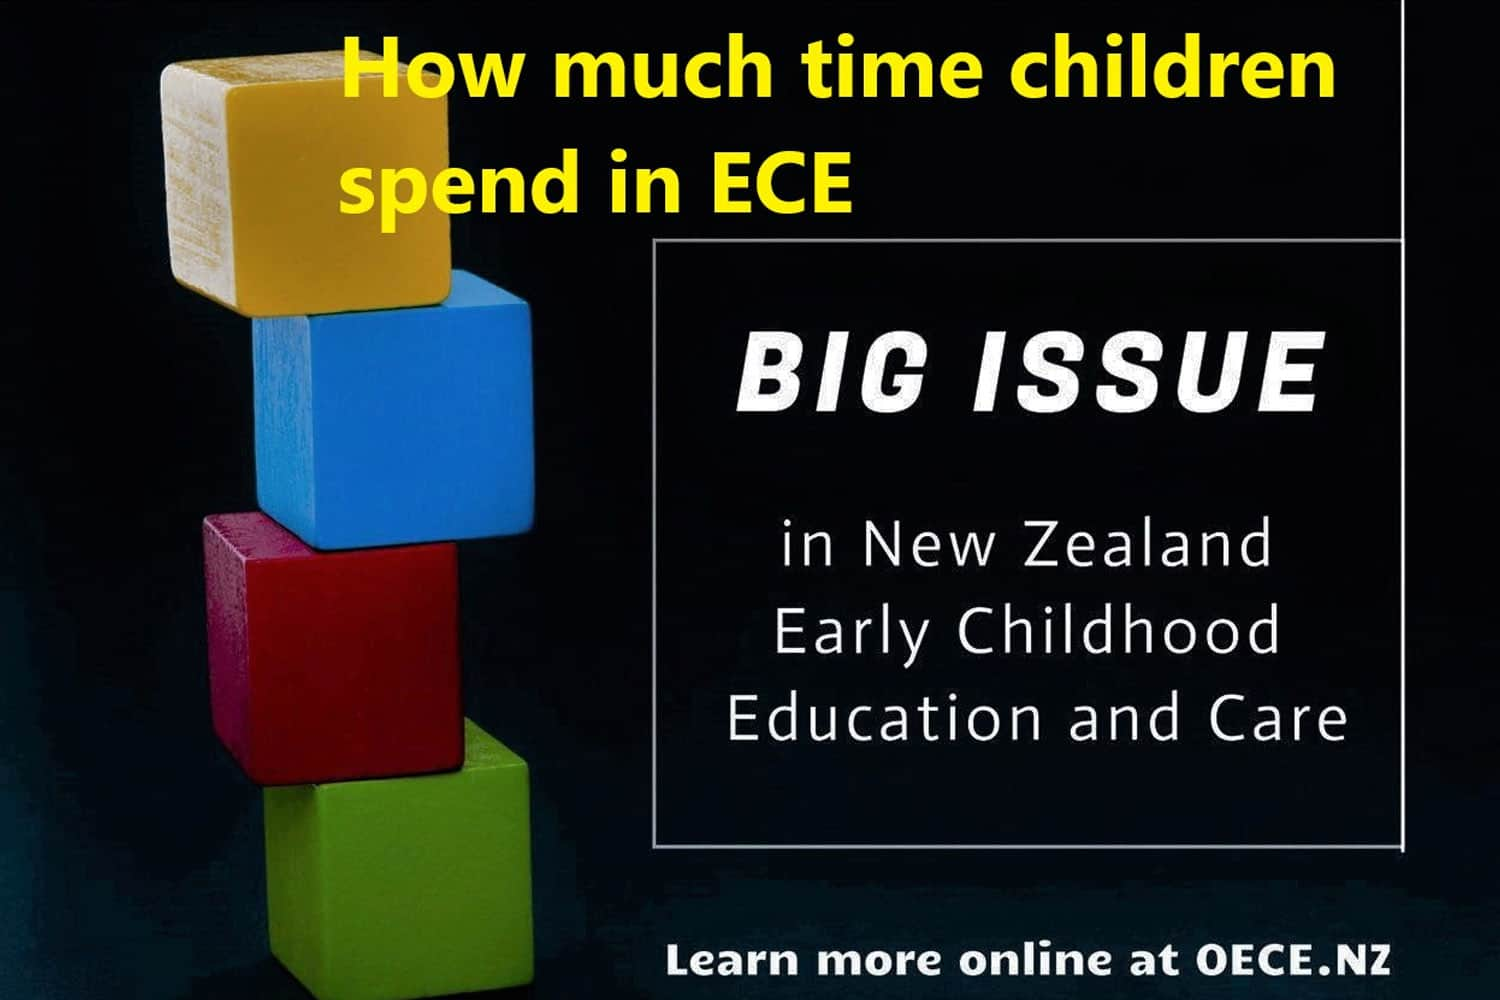 Participation in ECE and Parental Care